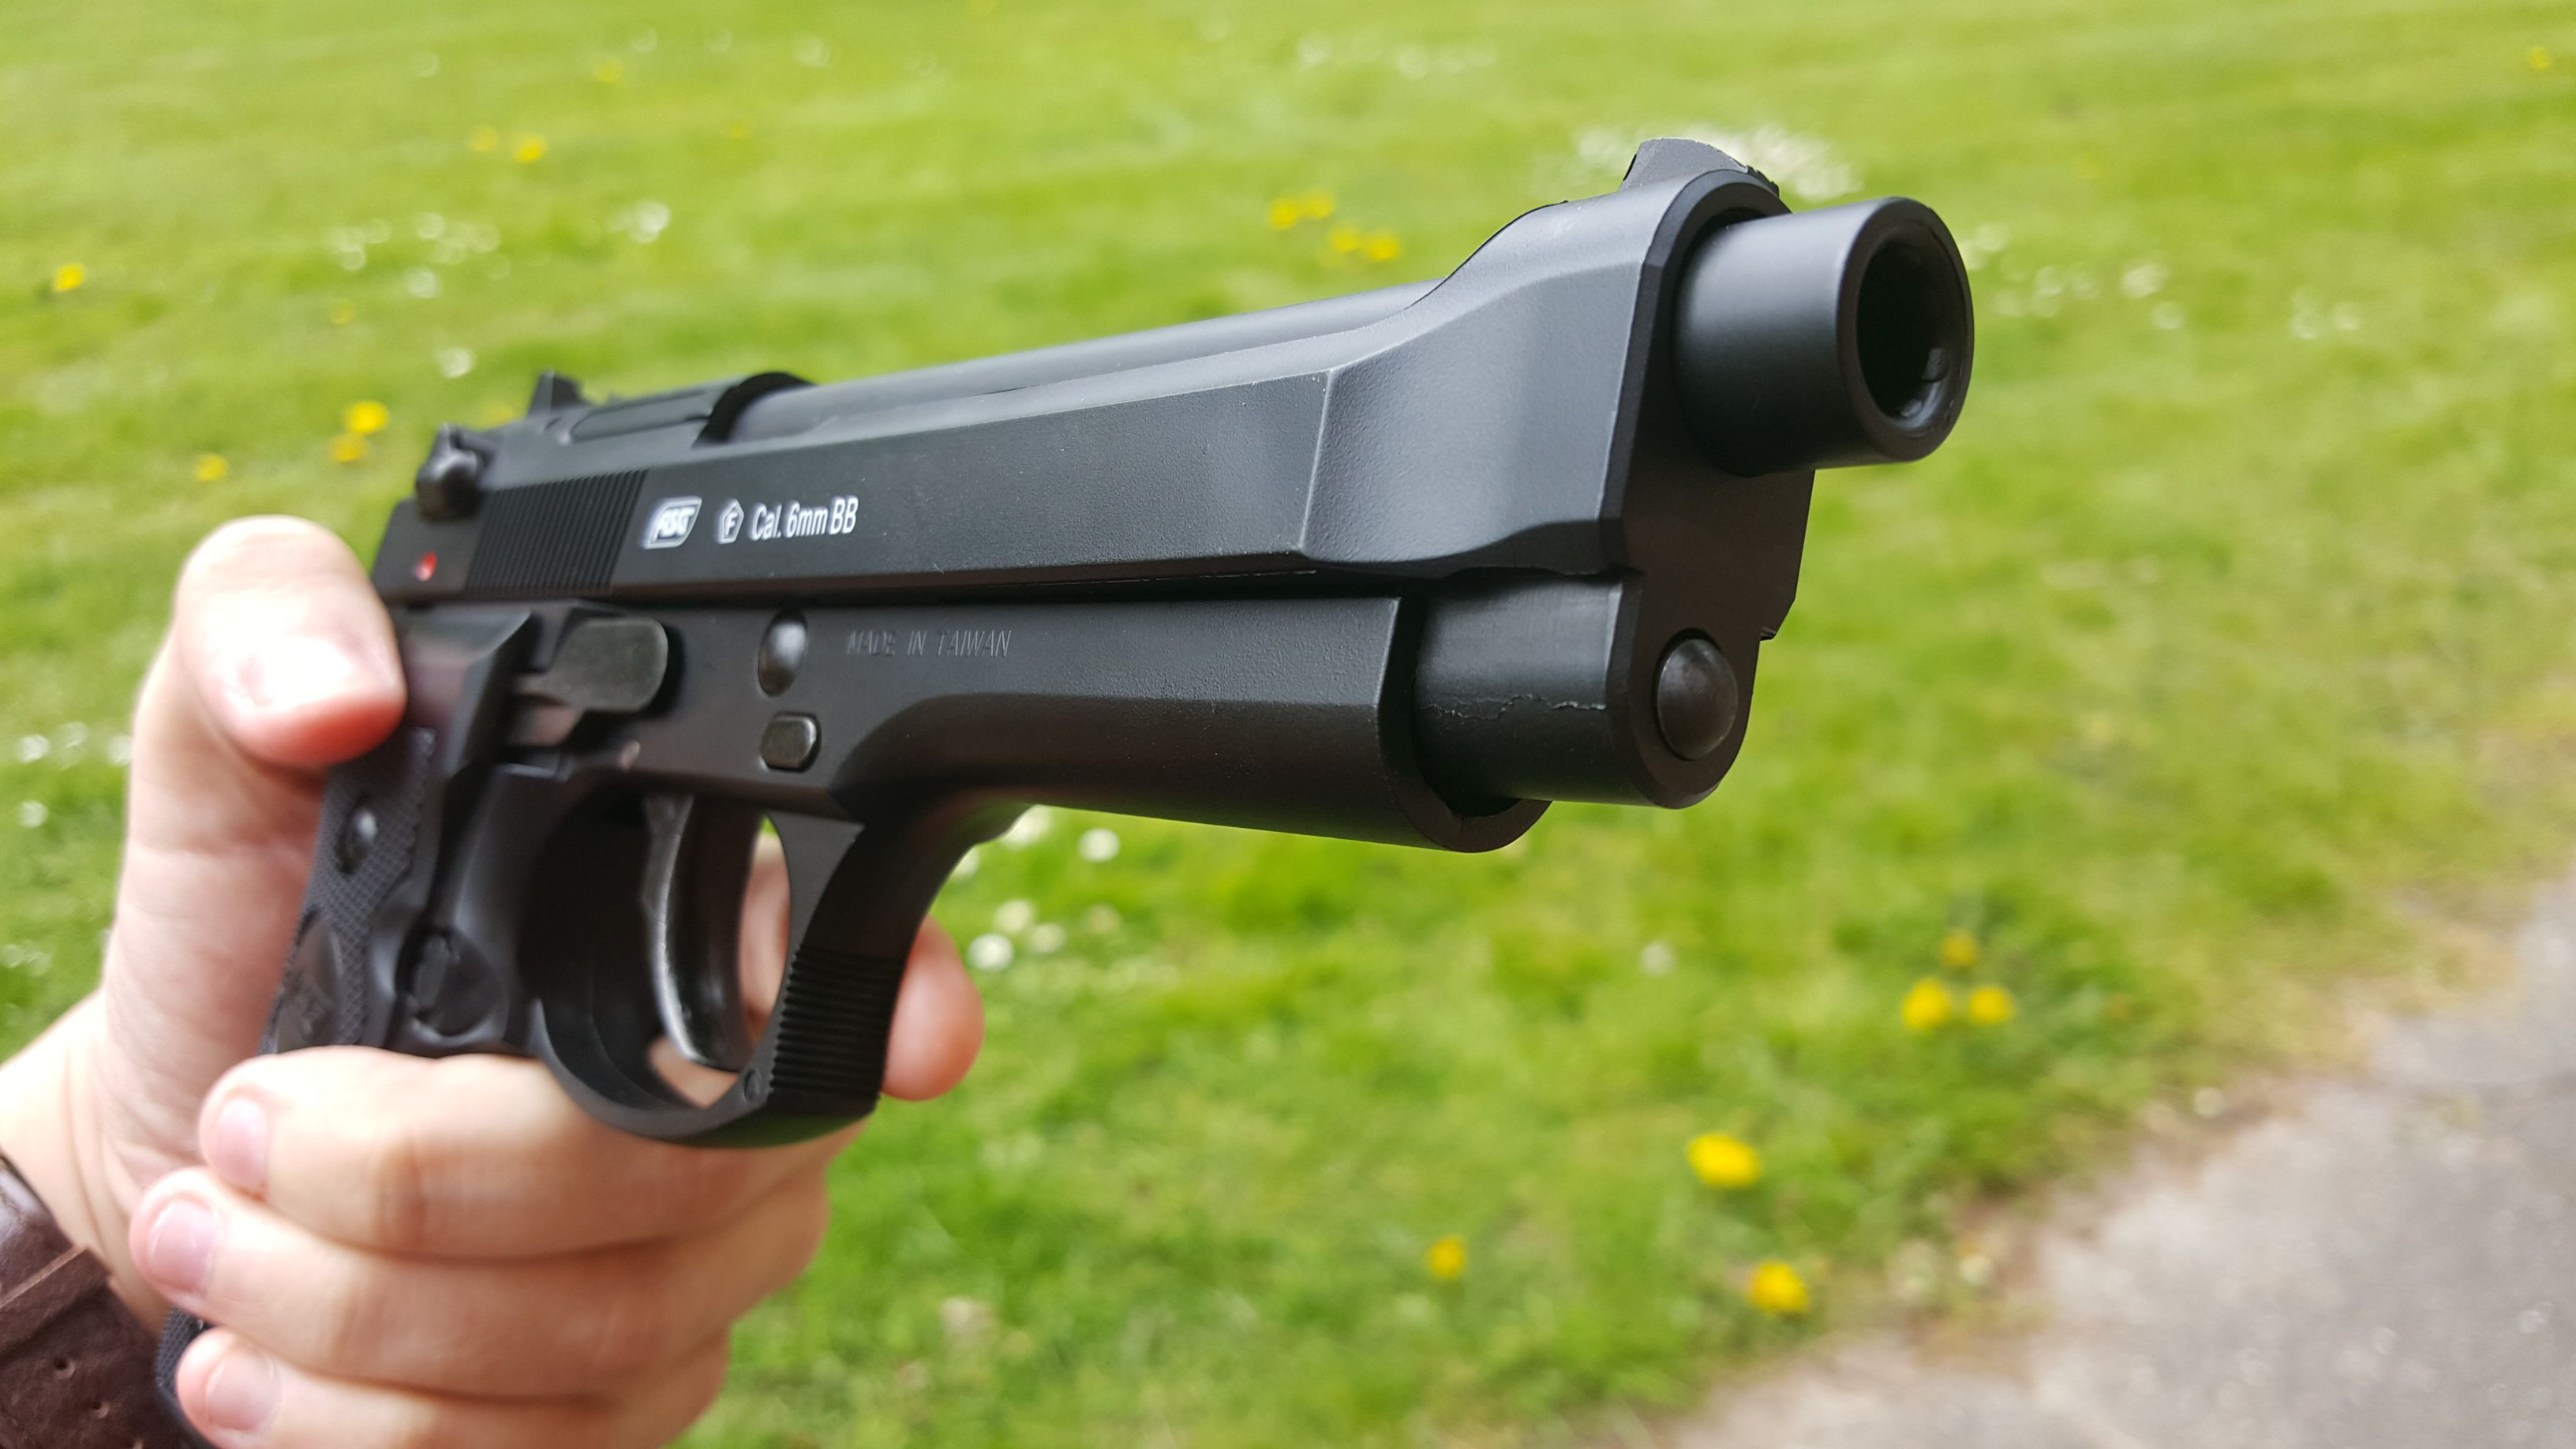 Airsoft Guns Danmark airsoft guns in denmark don't have orange tips | interesting stuff